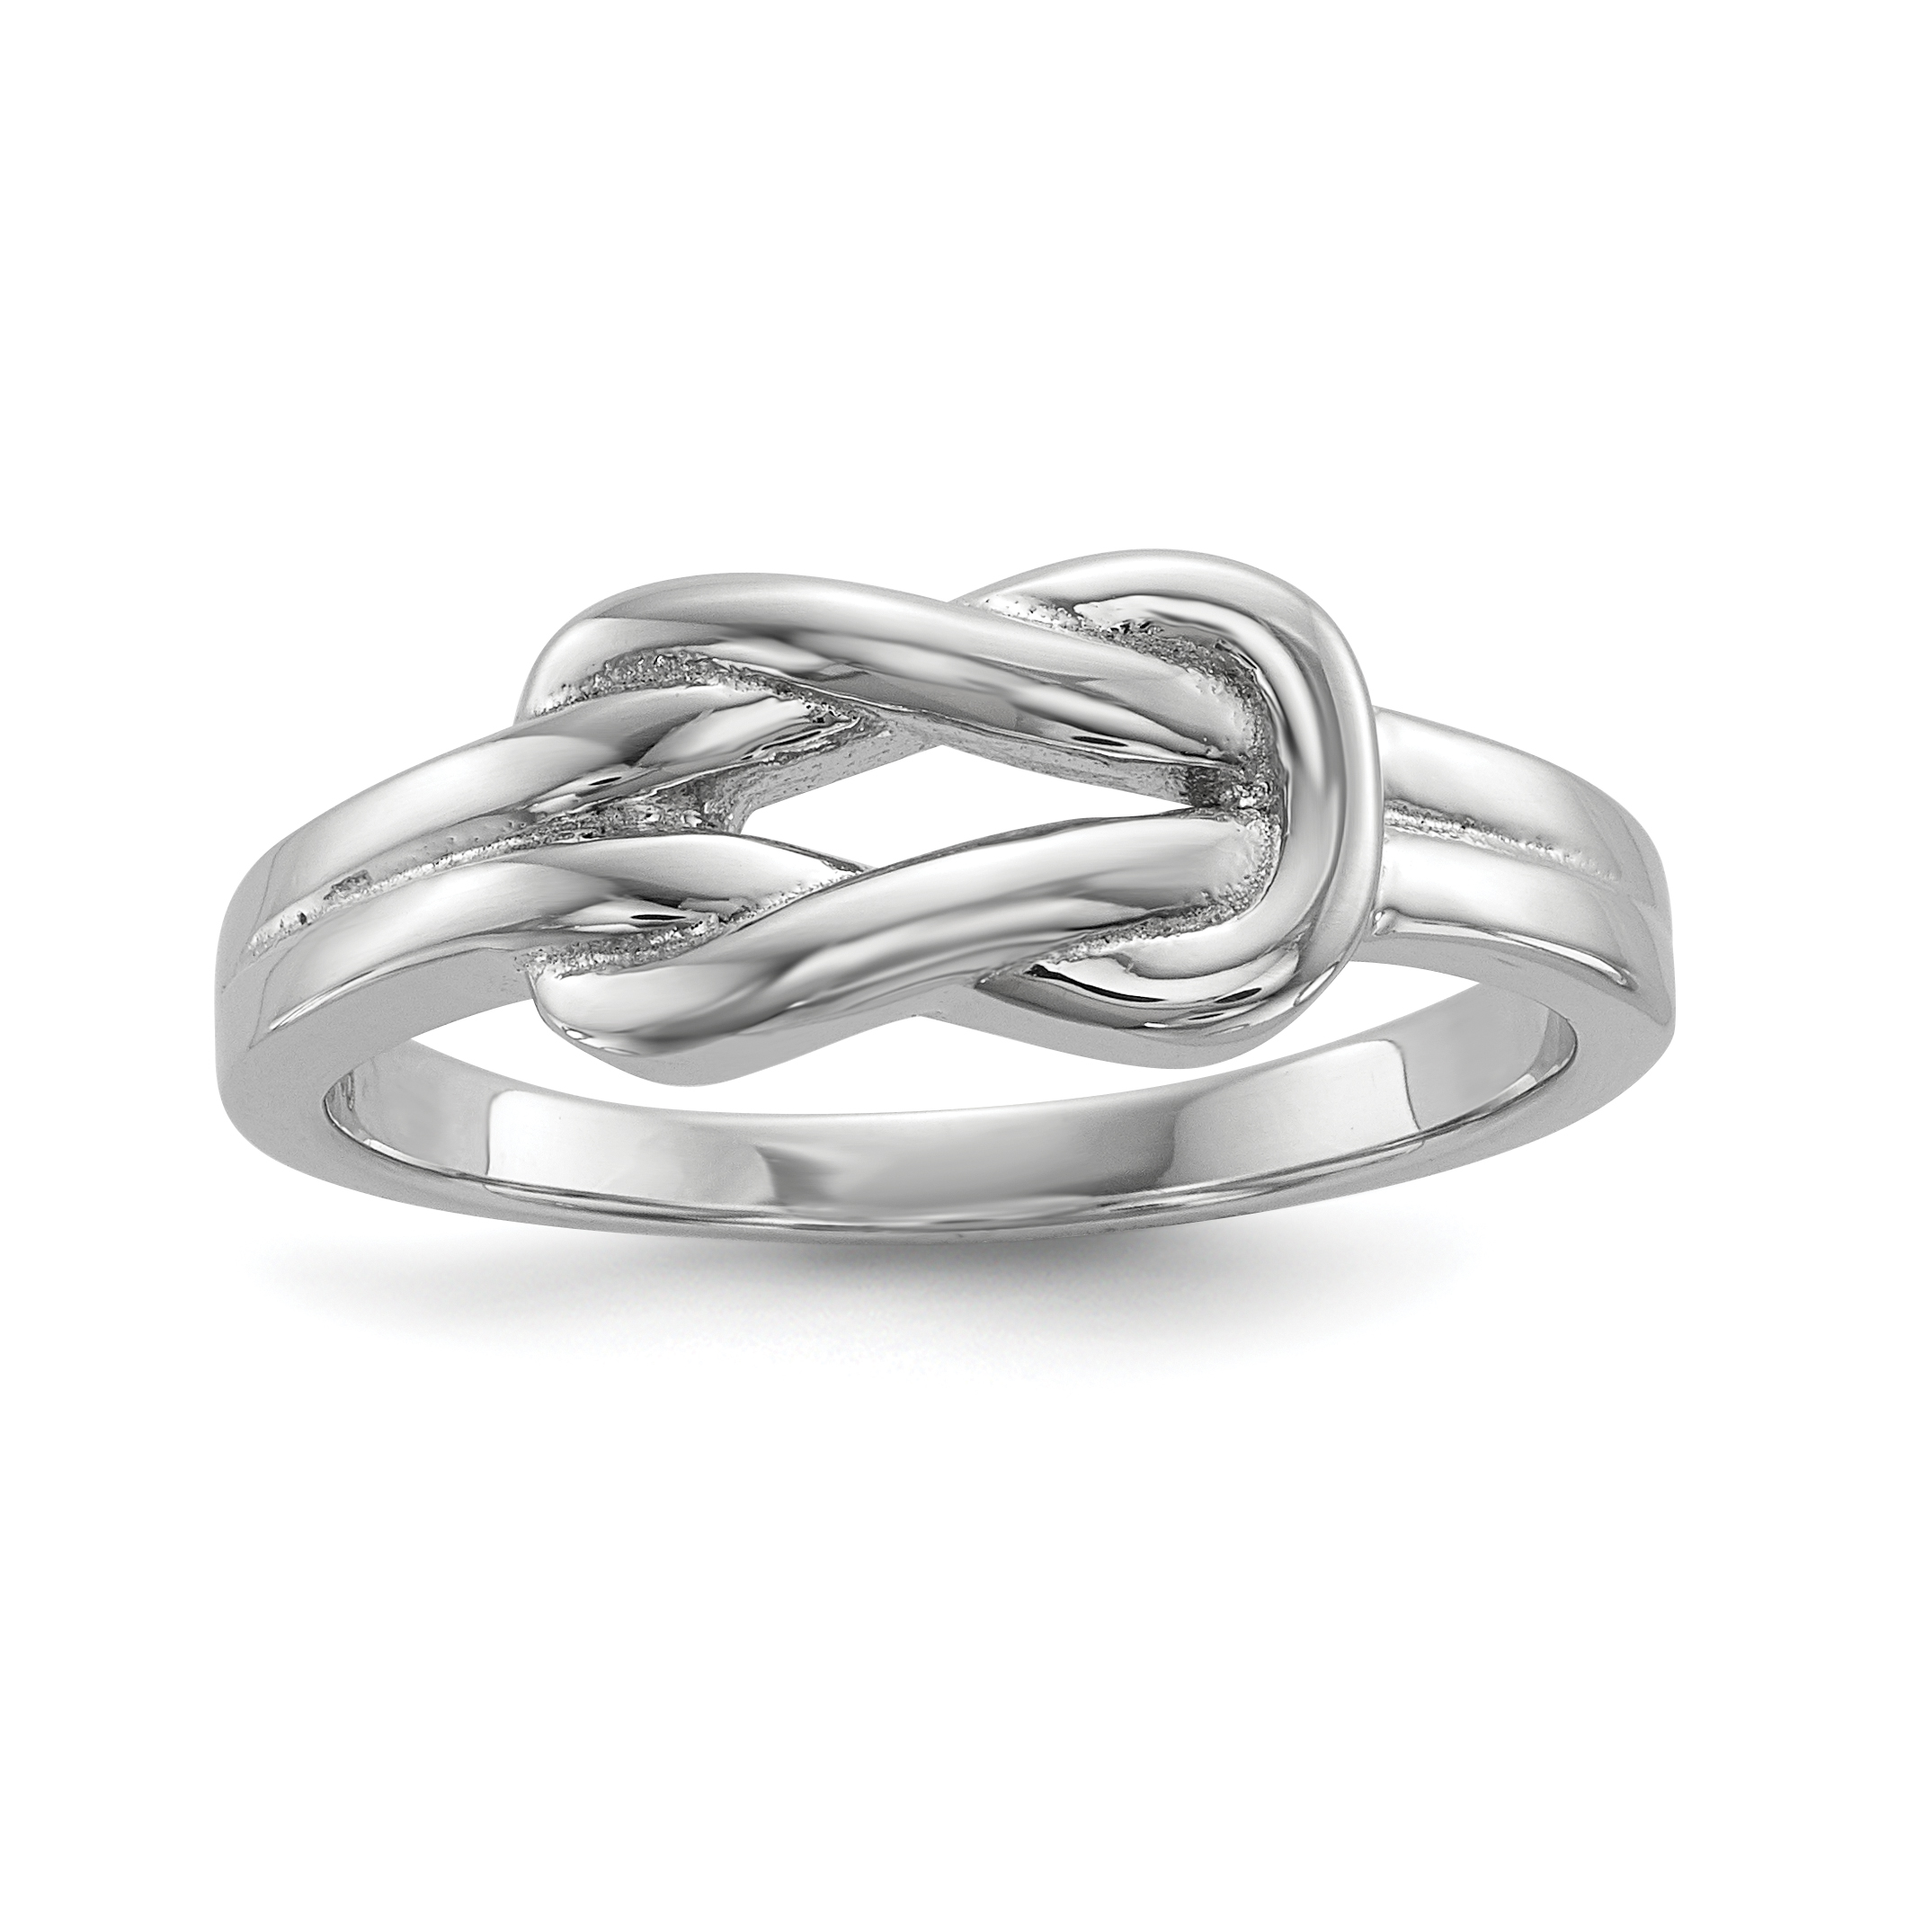 rhodium ara georgini rings ring jewellery